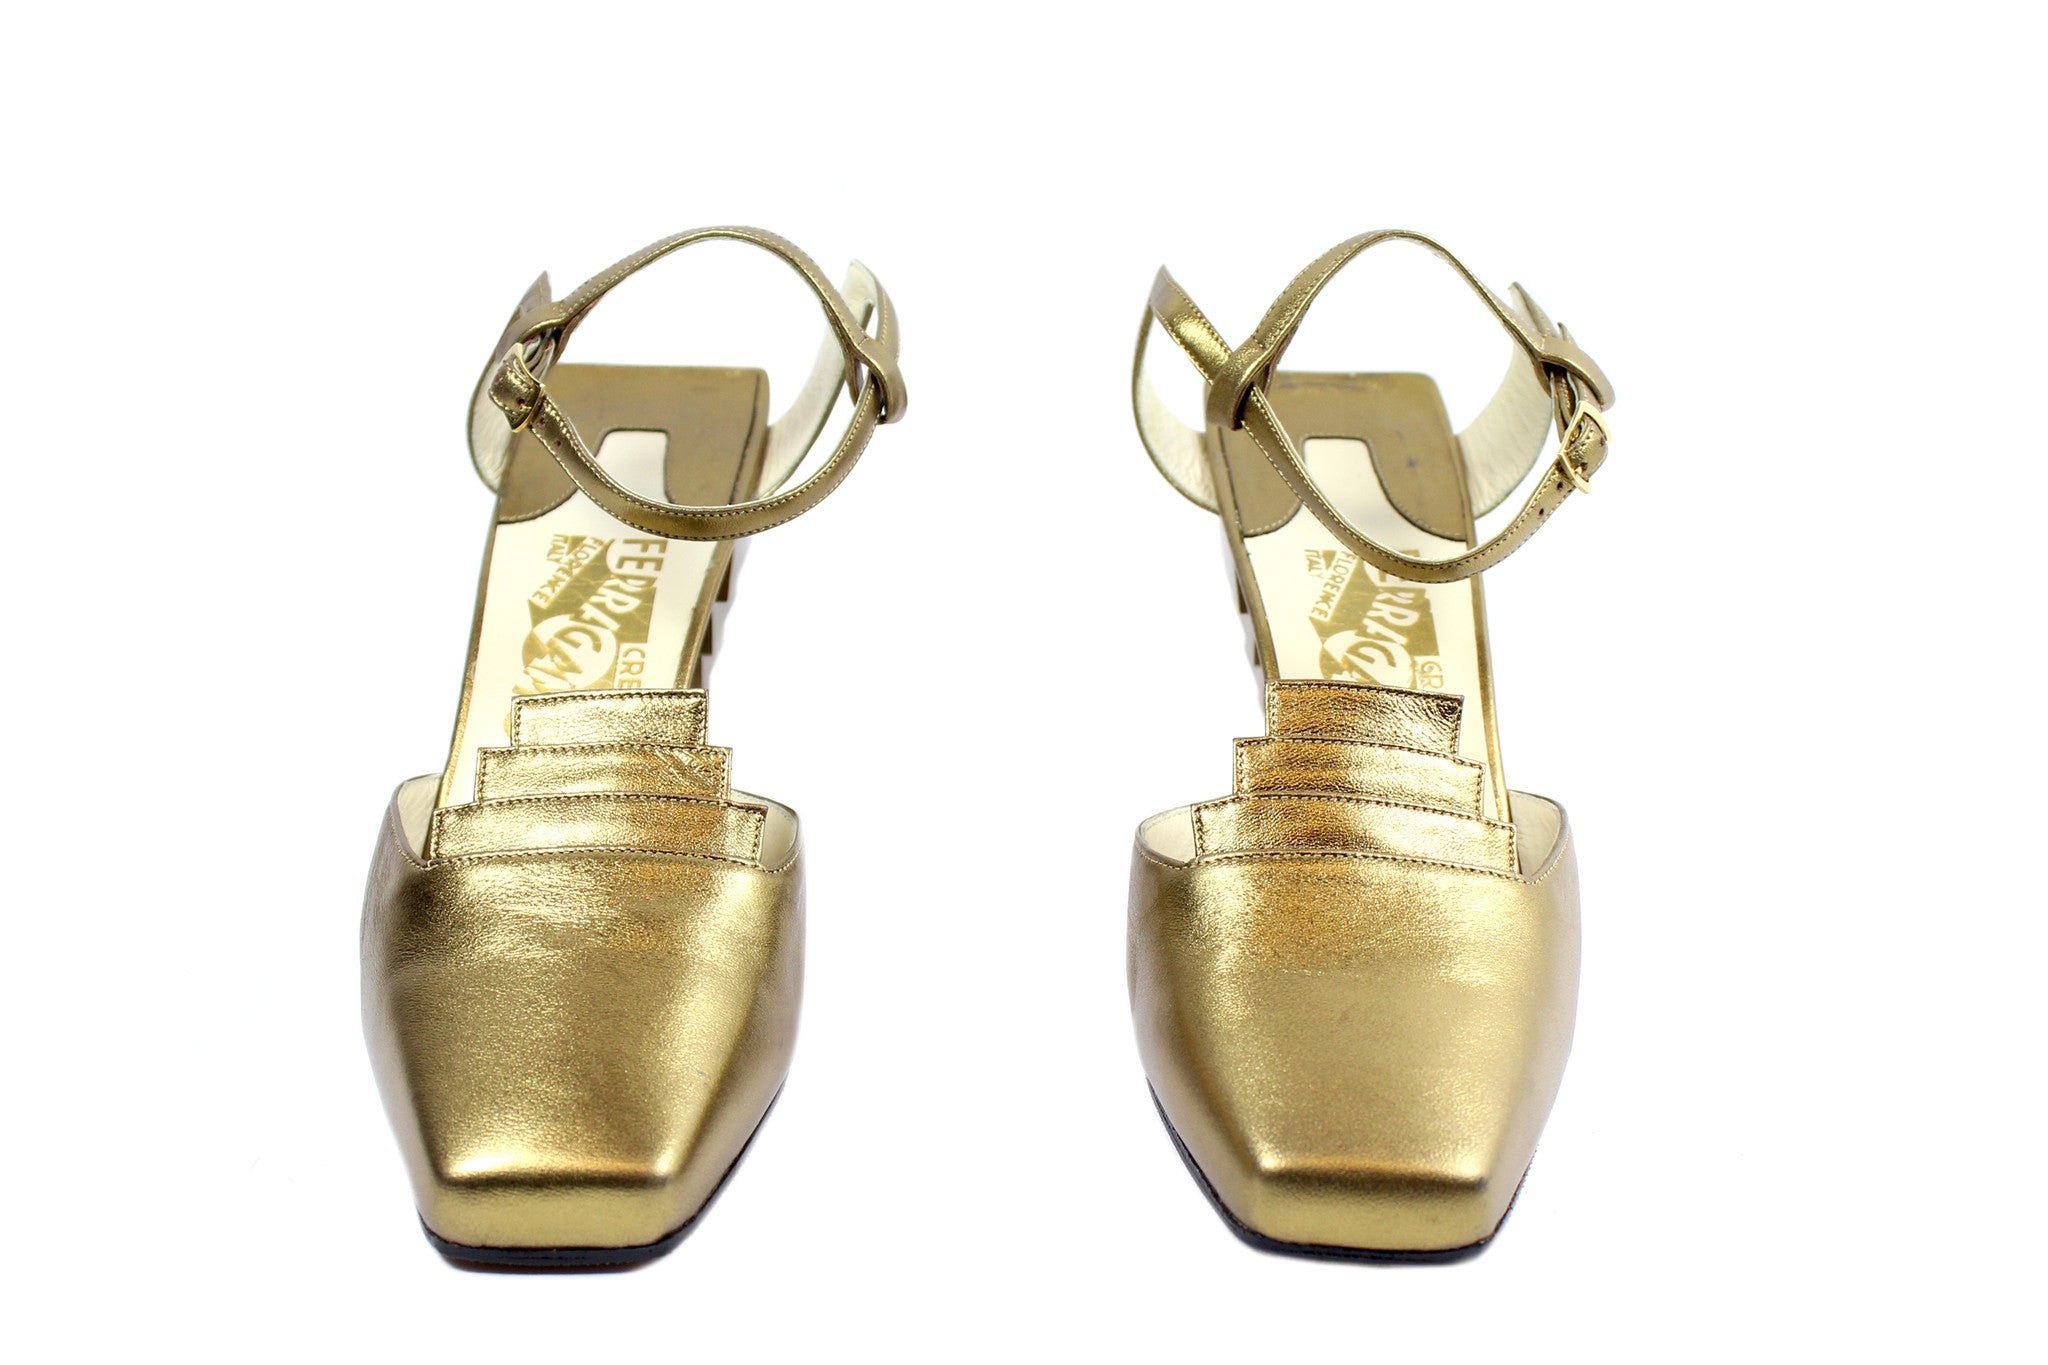 Salvatore Ferragamo 1930s Gold Pyramid Sandals (Size 6) - Encore Consignment - 3